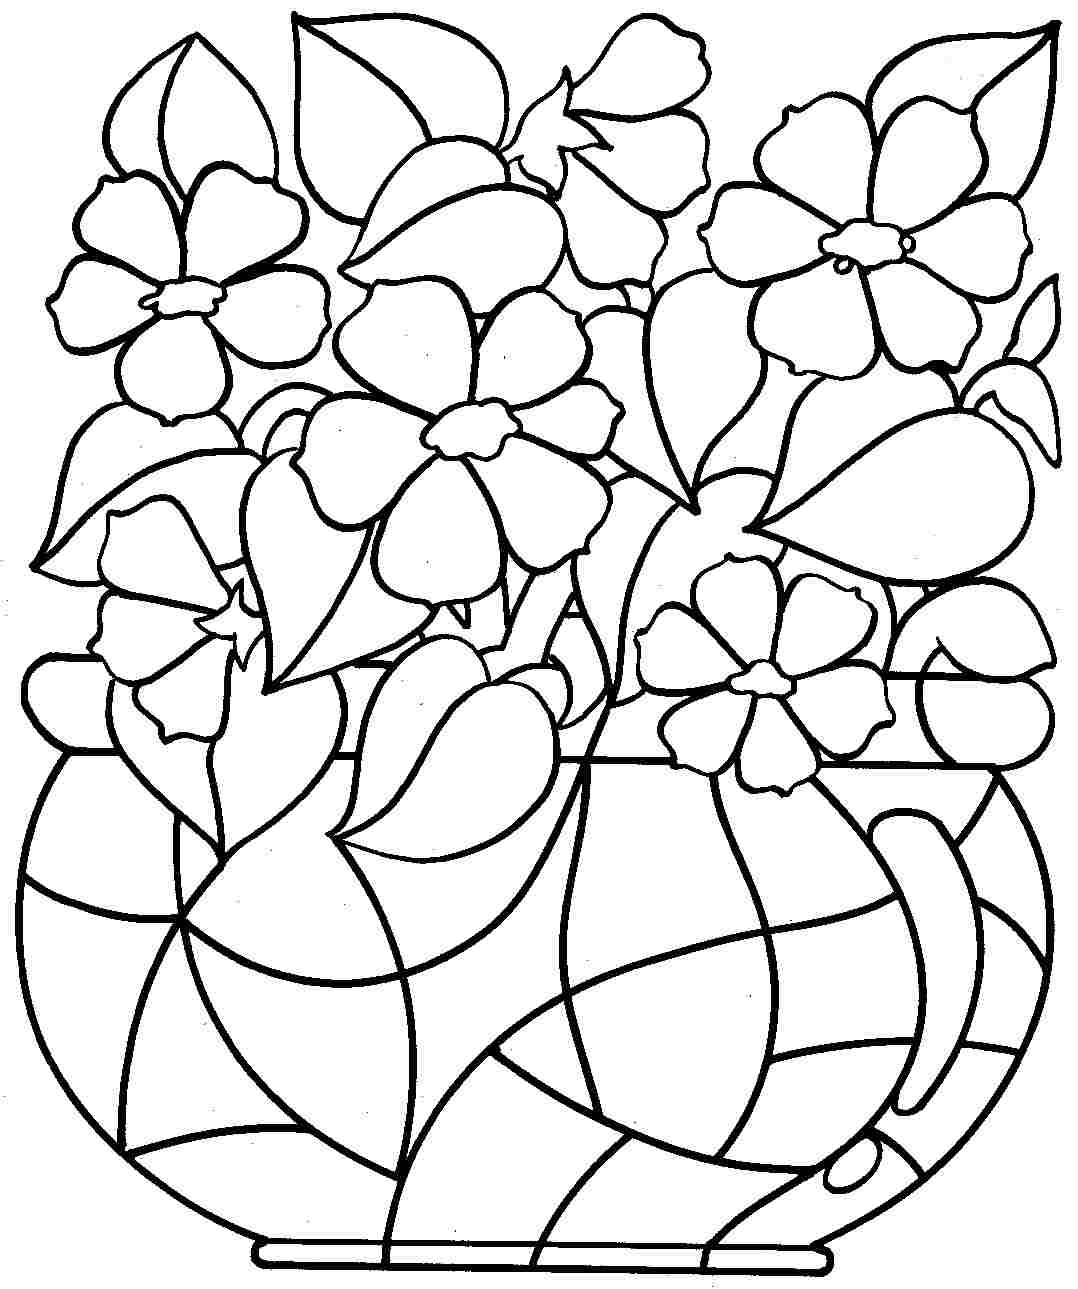 Flower Adult Coloring Pages - Download Coloring Pages Flower Coloring Pages Free